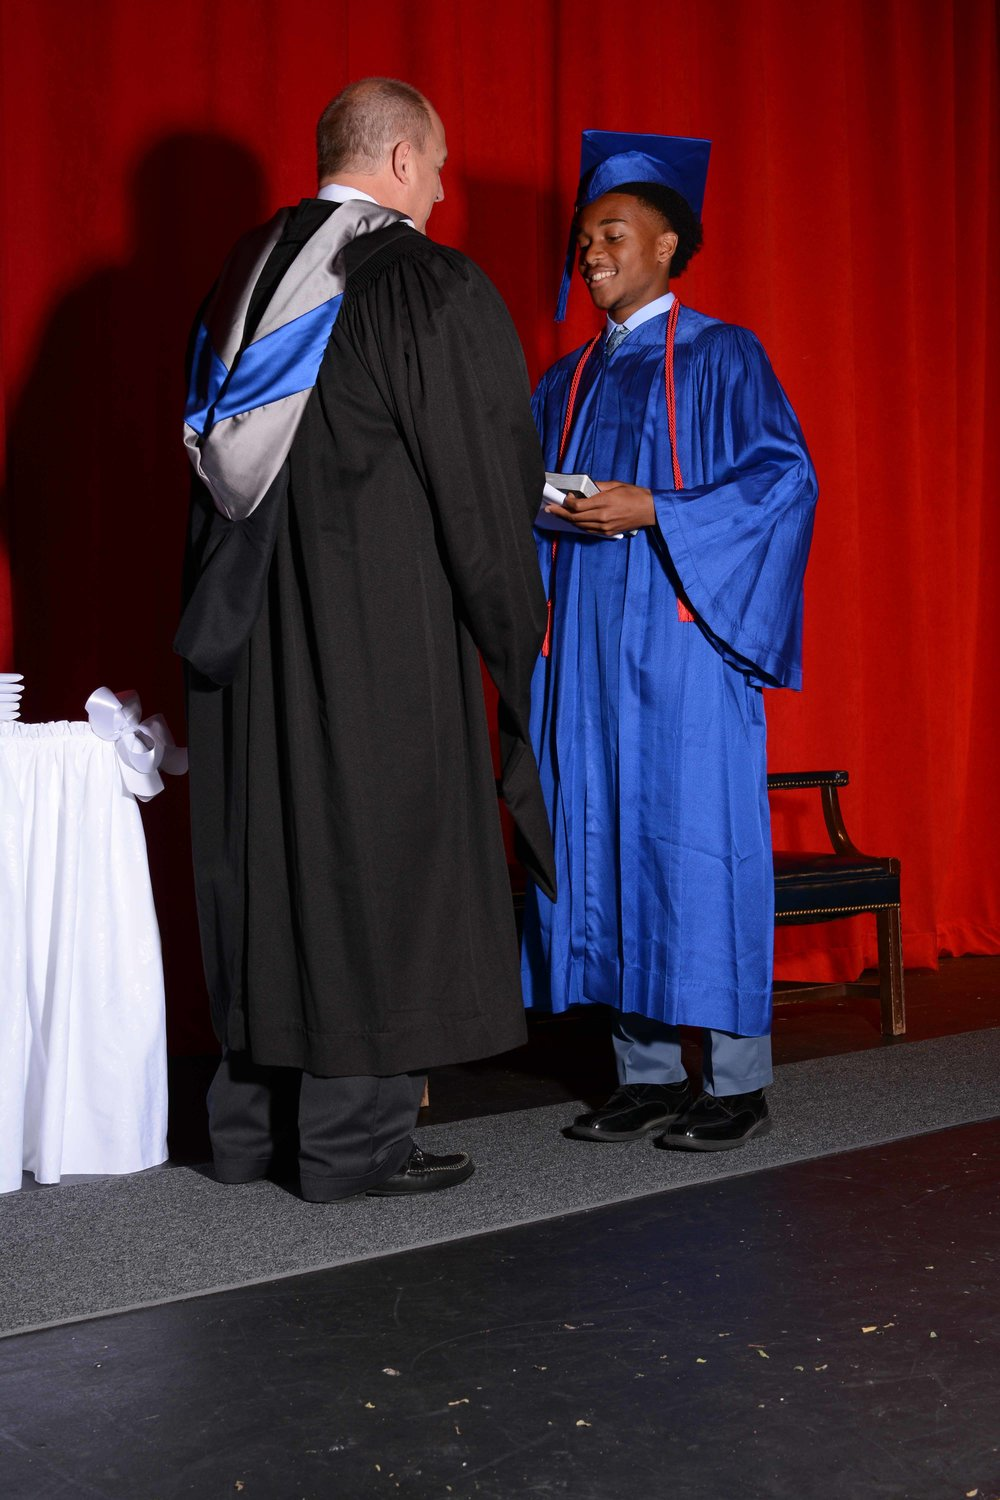 May15 HardingGraduation149.jpg